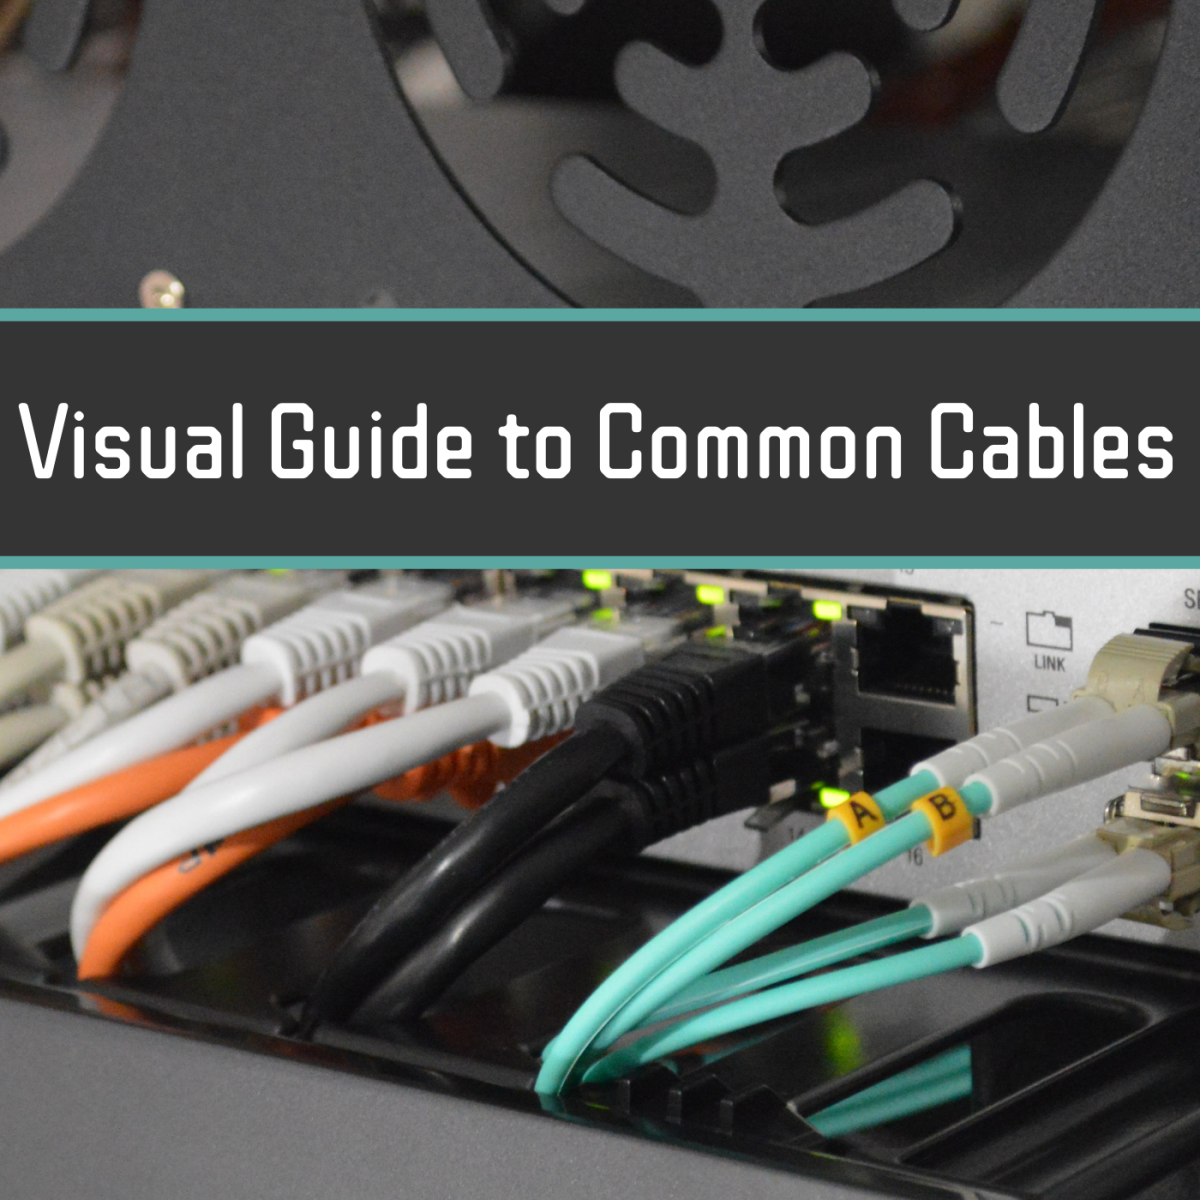 Cable Identification Guide: Which Is Which?